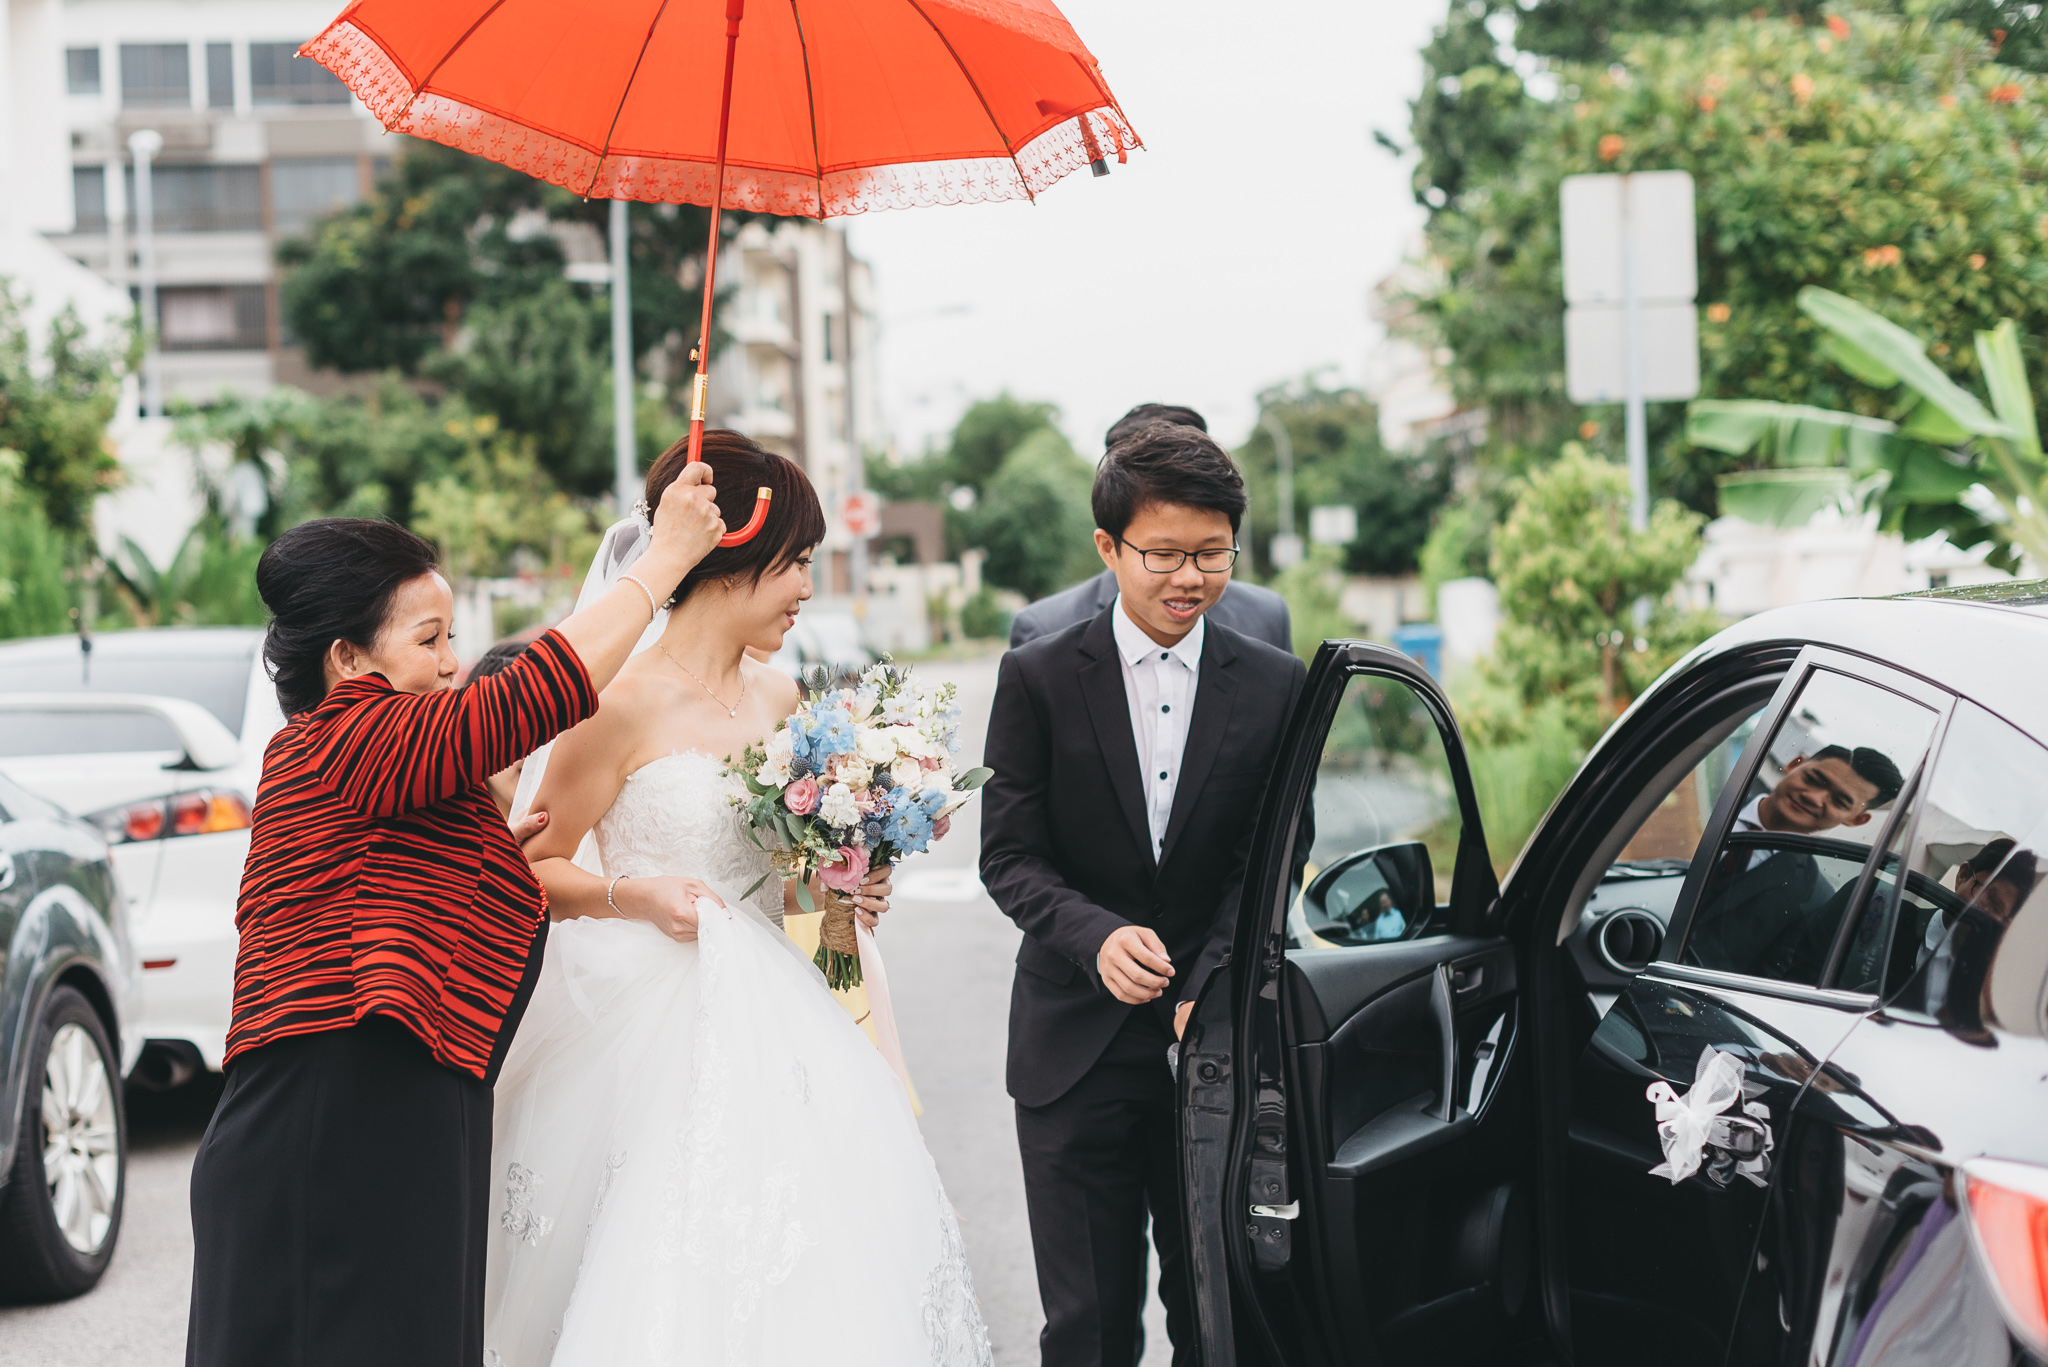 Alice & Wei Bang Wedding Day Highlights (resized for sharing) - 050.jpg